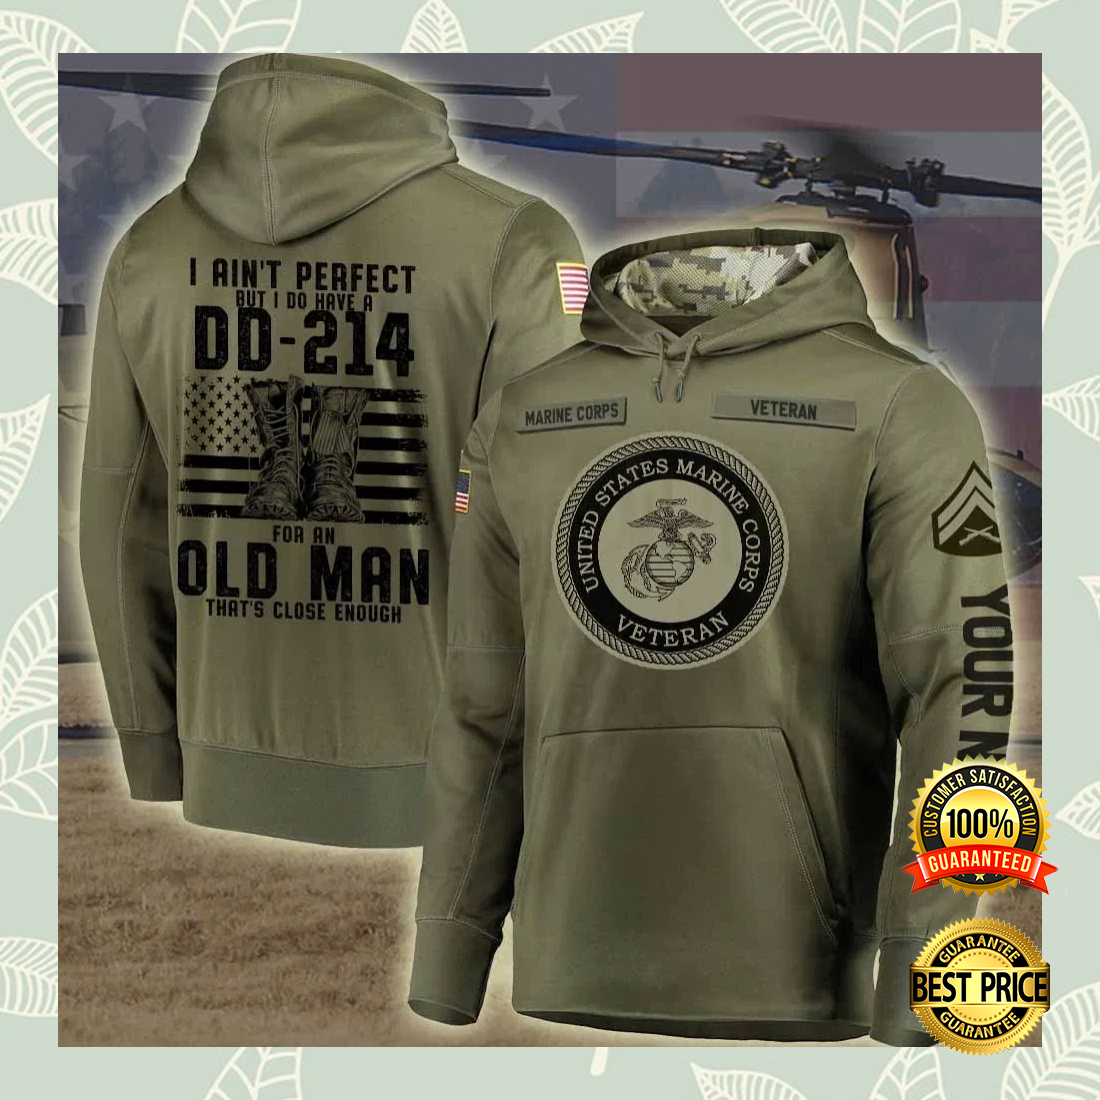 Personalized US marine corps i ain't perfect but i do have a dd 214 for an old man all over printed 3D hoodiePersonalized Us Marine Corps I Ain't Perfect But I Do Have A Dd 214 For An Old Man All Over Printed 3d Hoodie 4